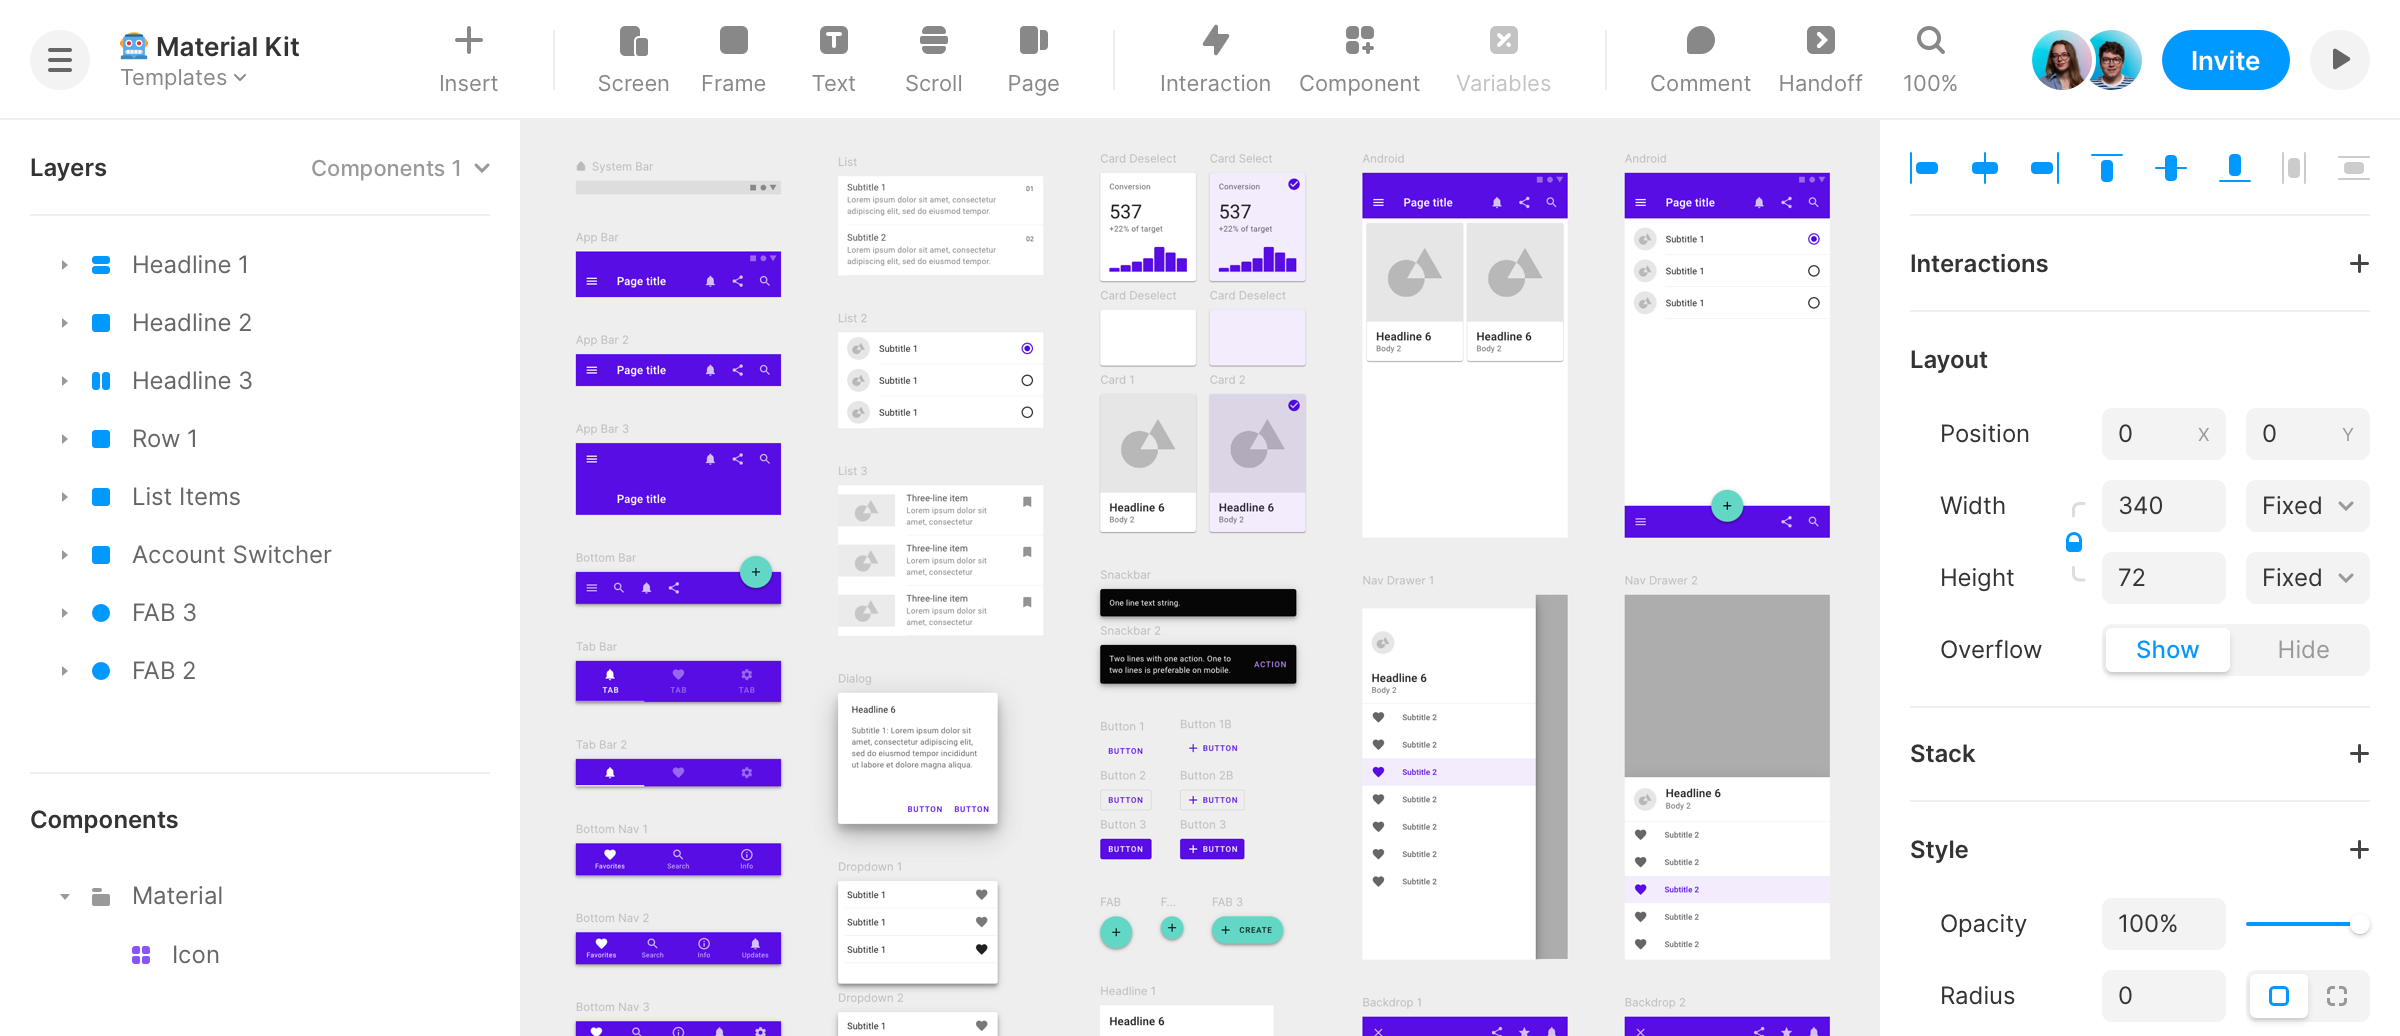 All the material UI kit components on the Framer canvas.